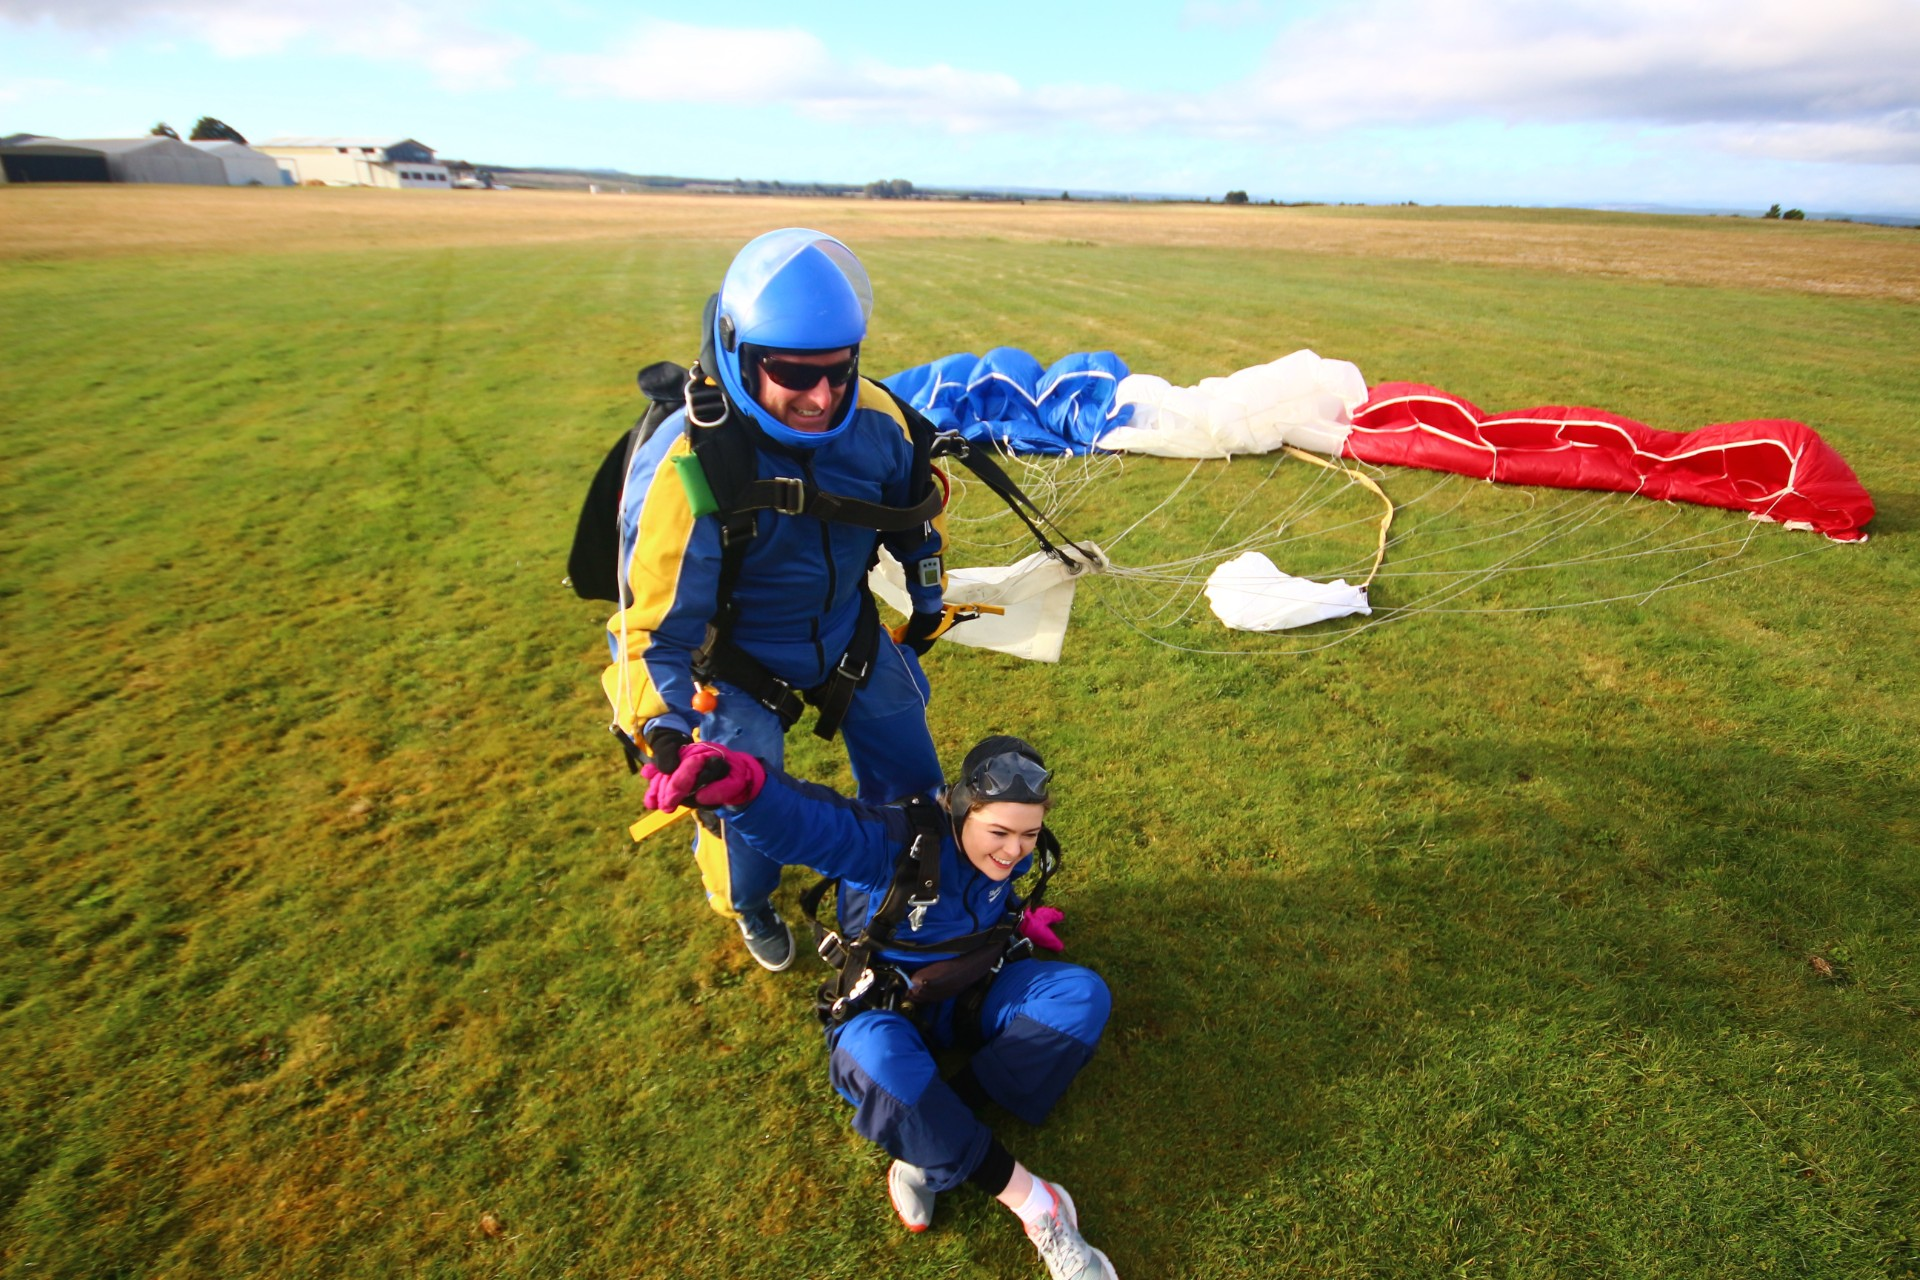 Skydive landing parachute girl on floor Skydive Taupo The Best Skydiving in New Zealand